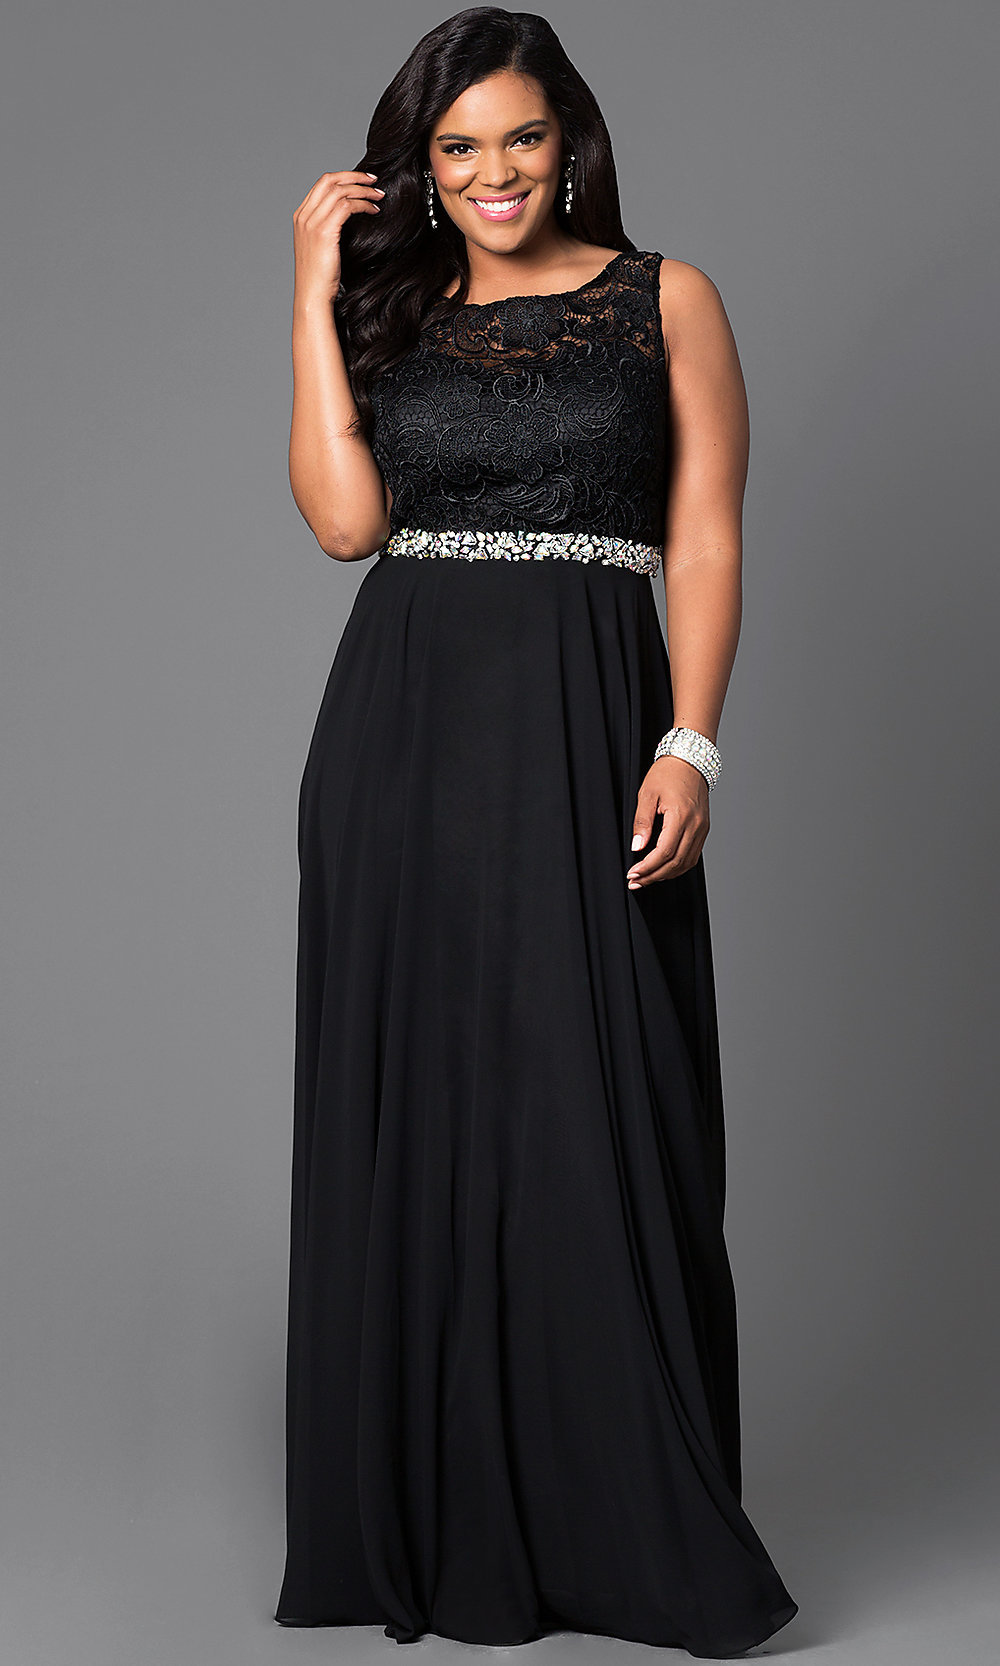 Lace-Bodice Long Formal Plus-Size Dress with Jewels